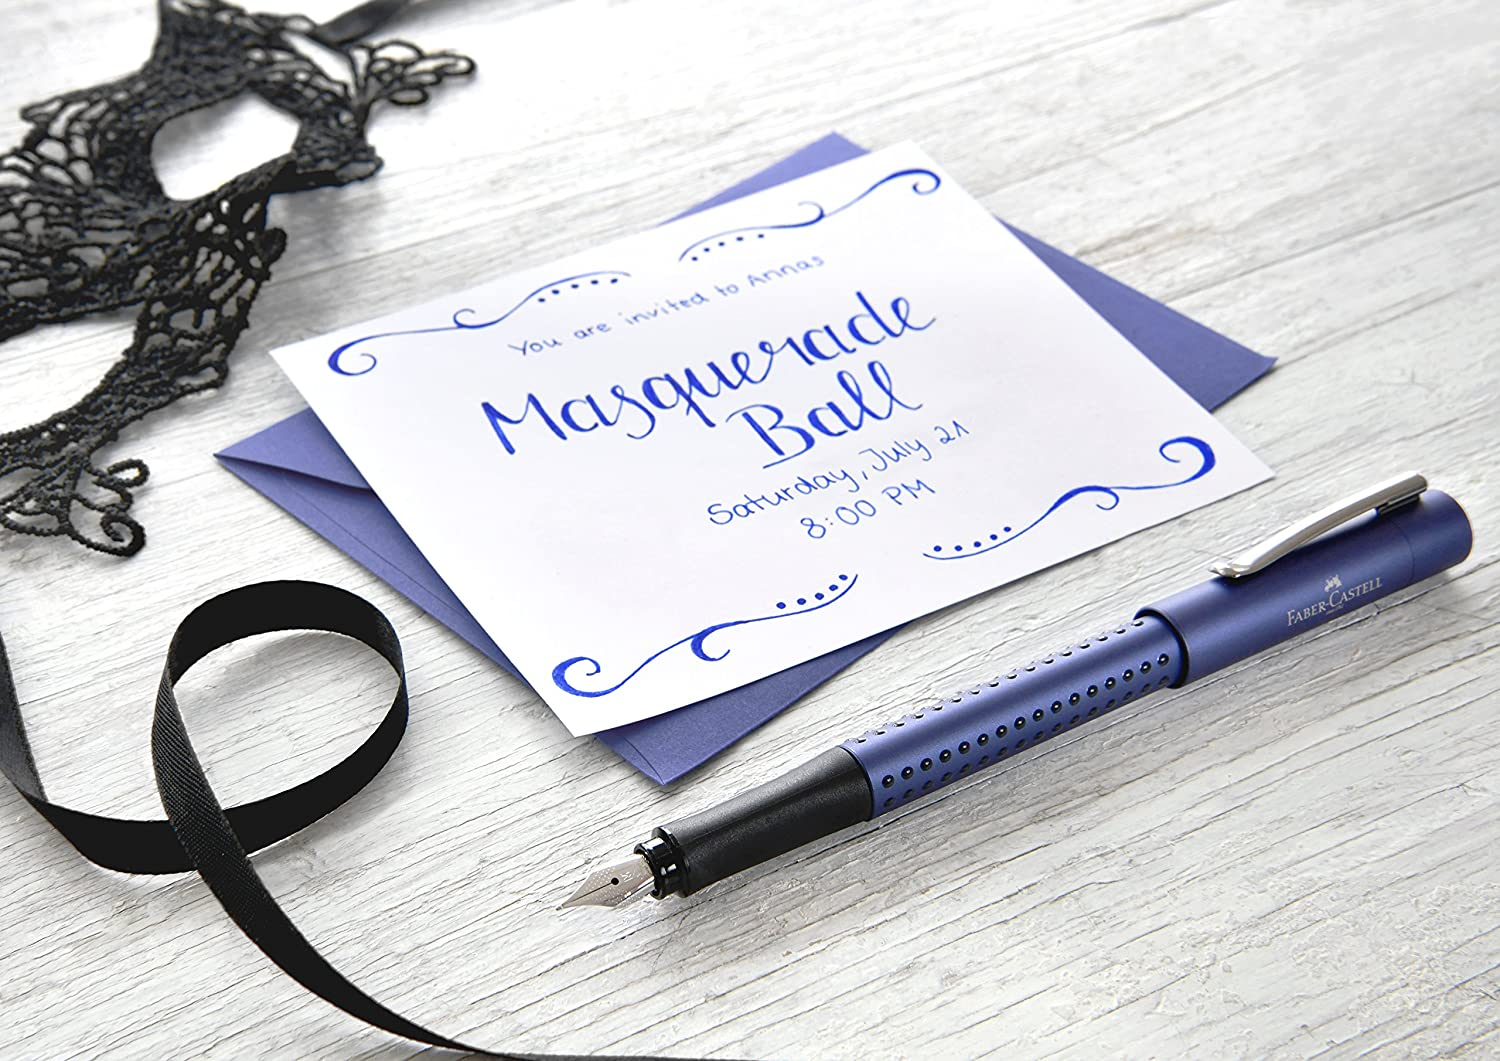 New Extra Fine Point  140907 Blue Faber-Castell Grip 2011 Fountain Pen